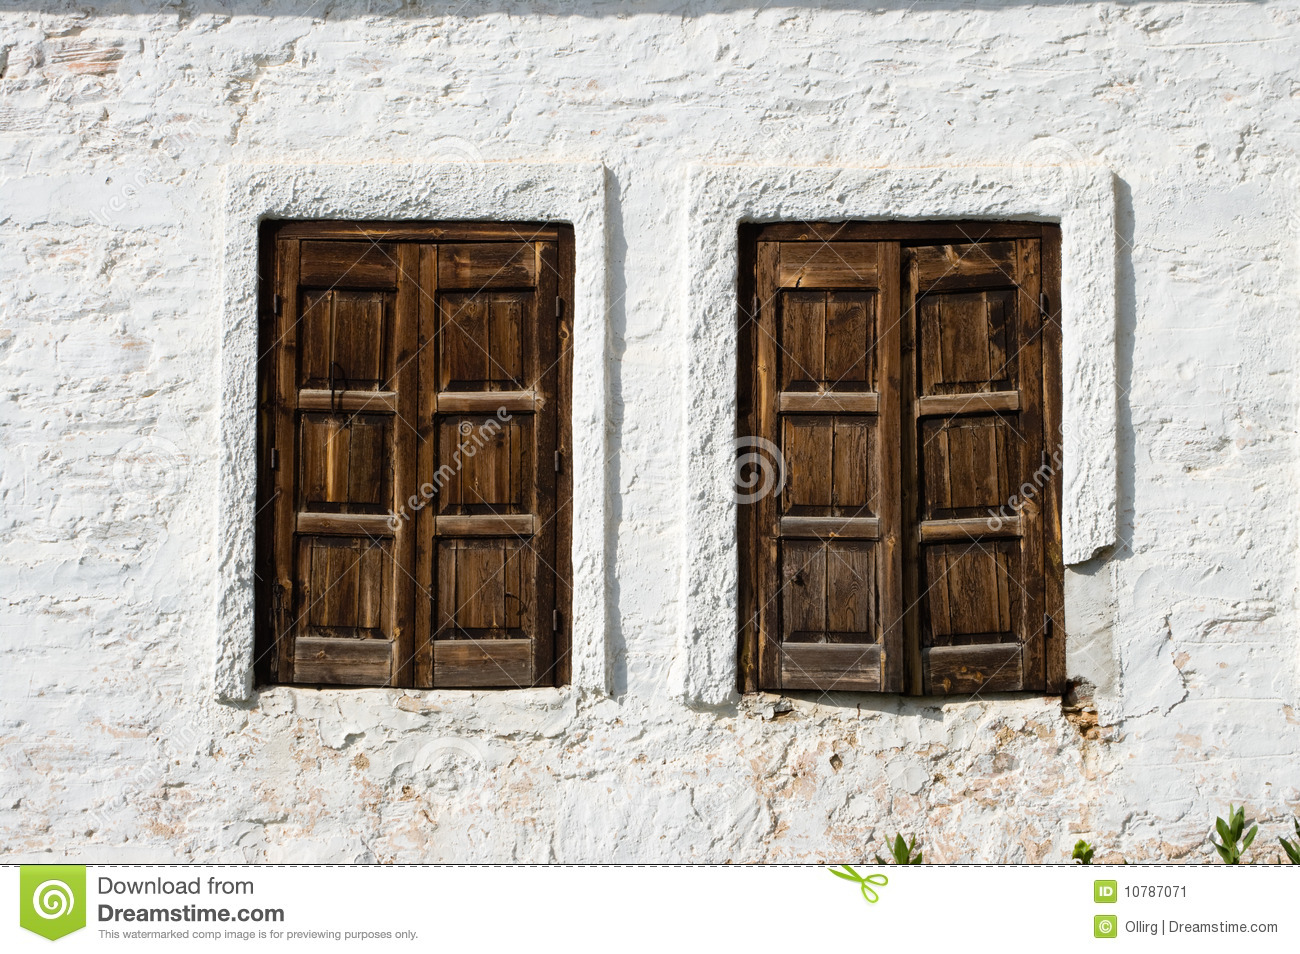 Tow rustic windows wooden closed stock image image of for Wood windows colorado